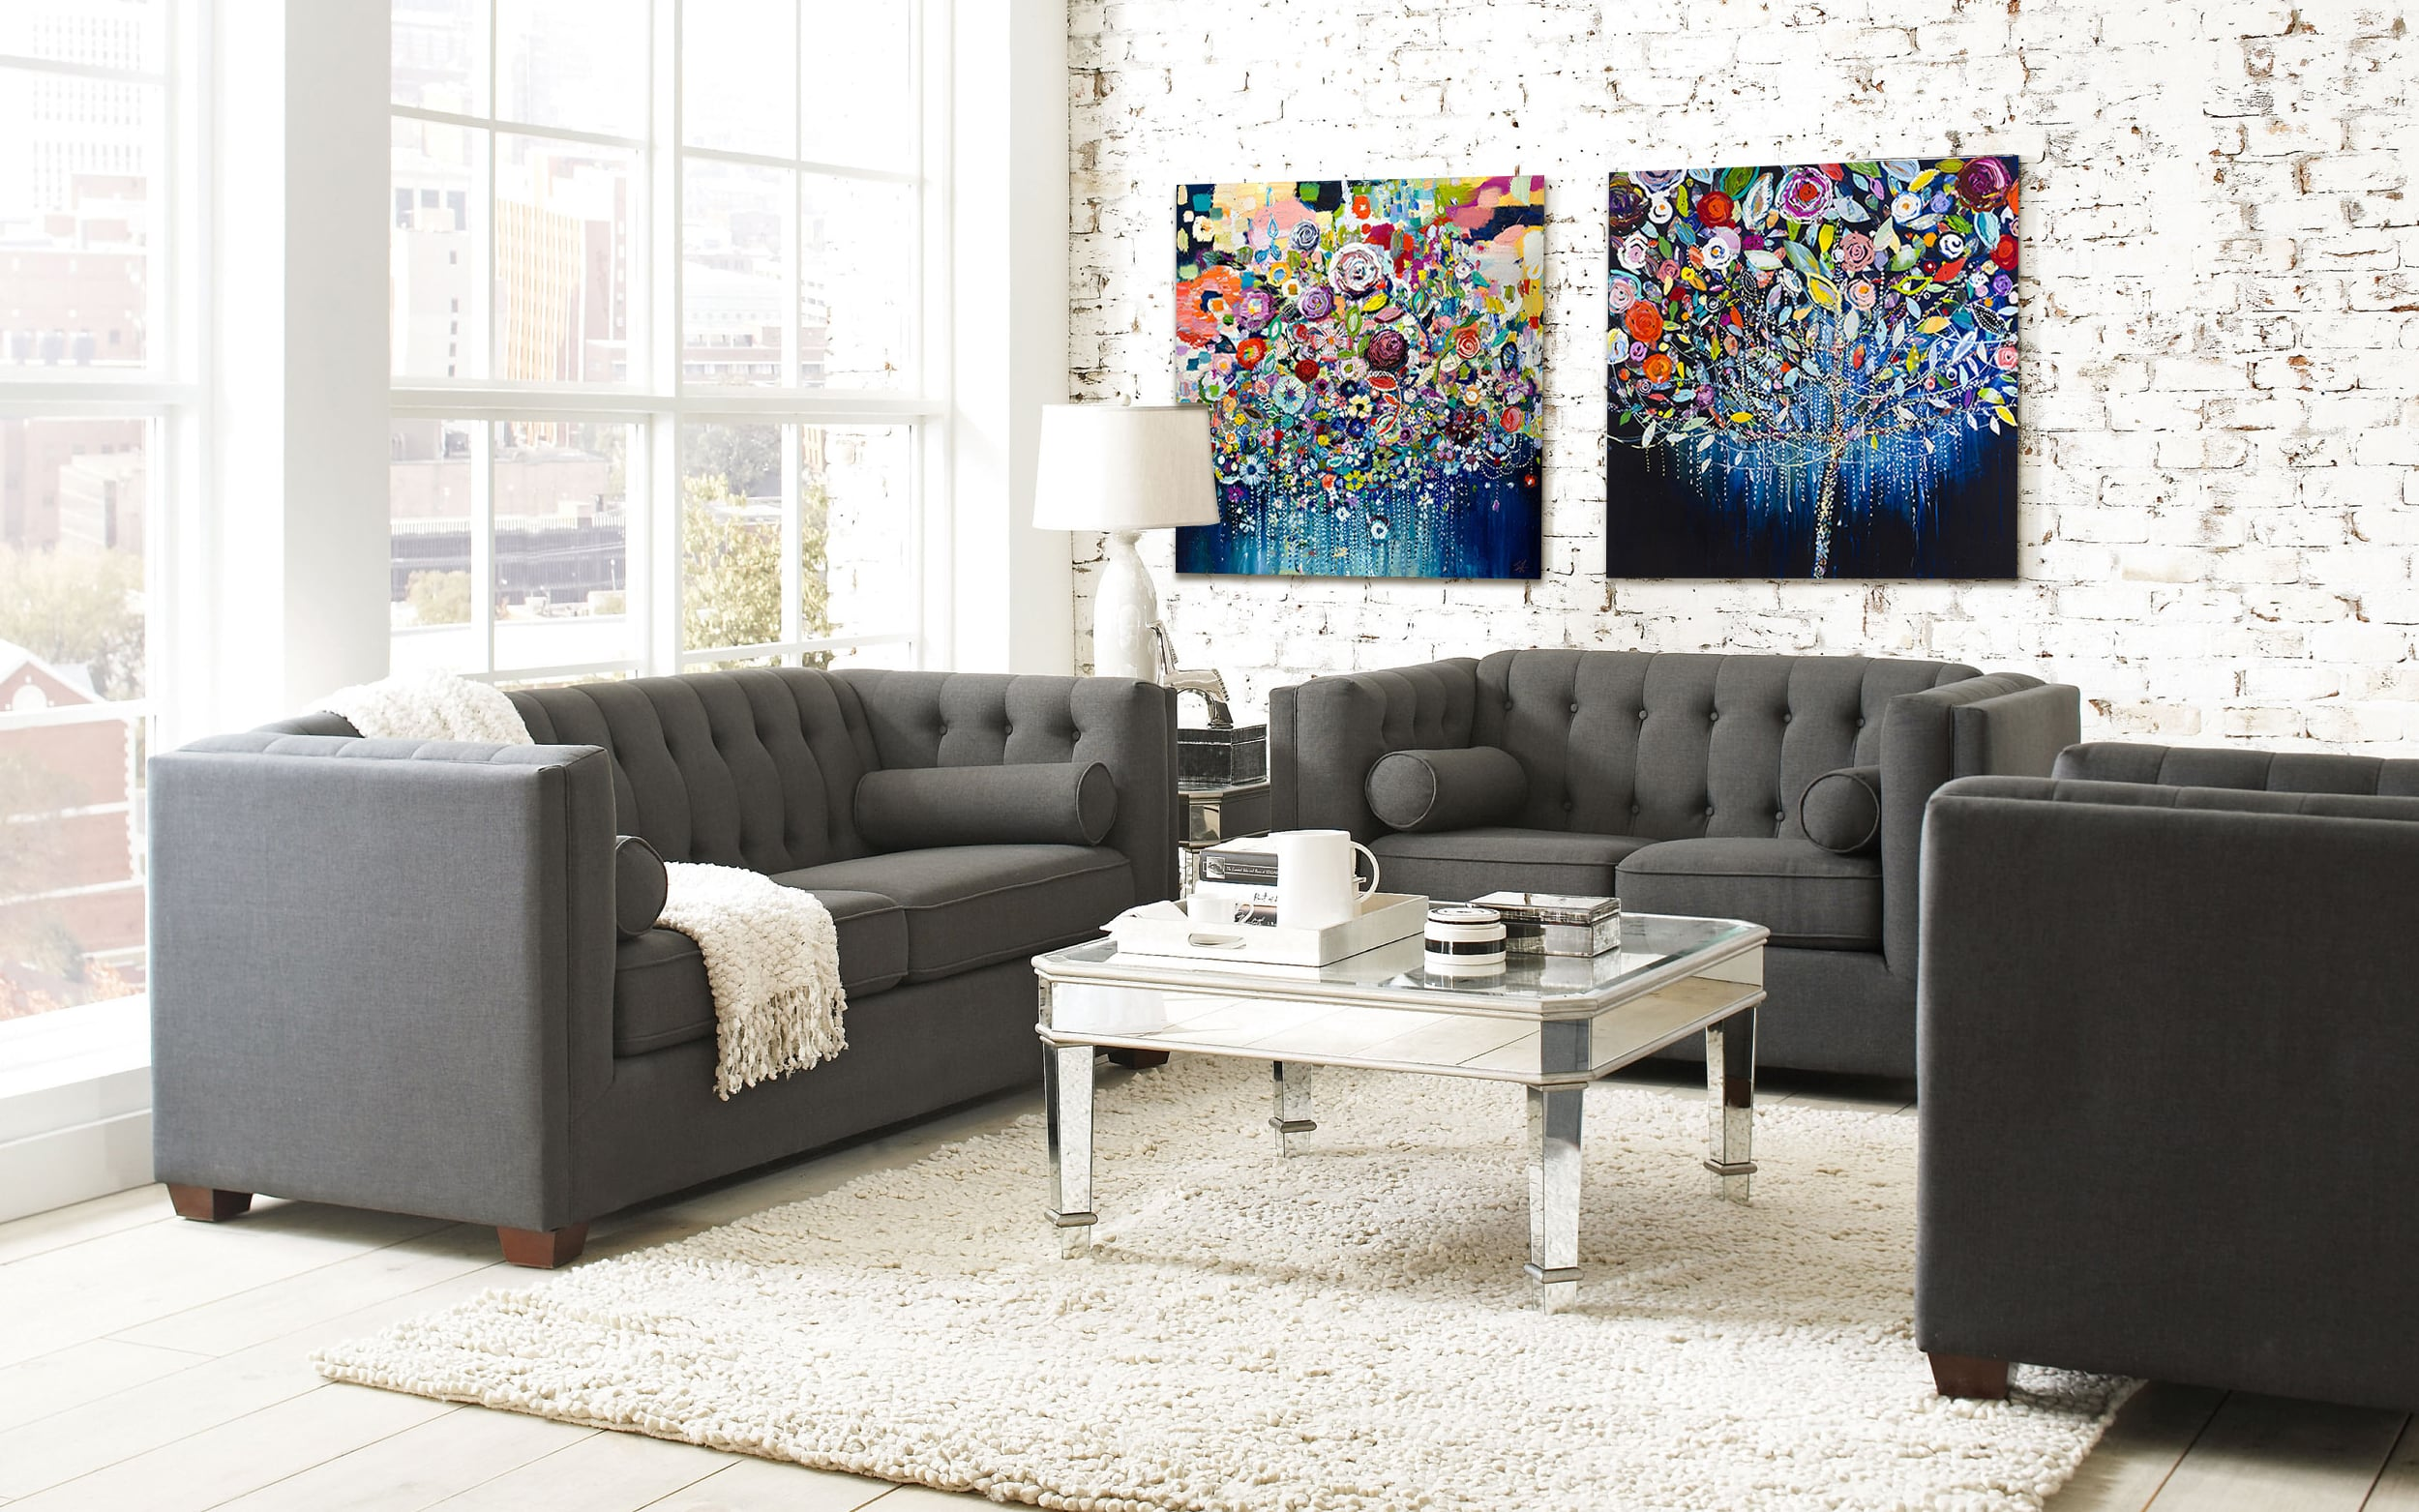 gray sofas 2 with starla floral art copy.jpg